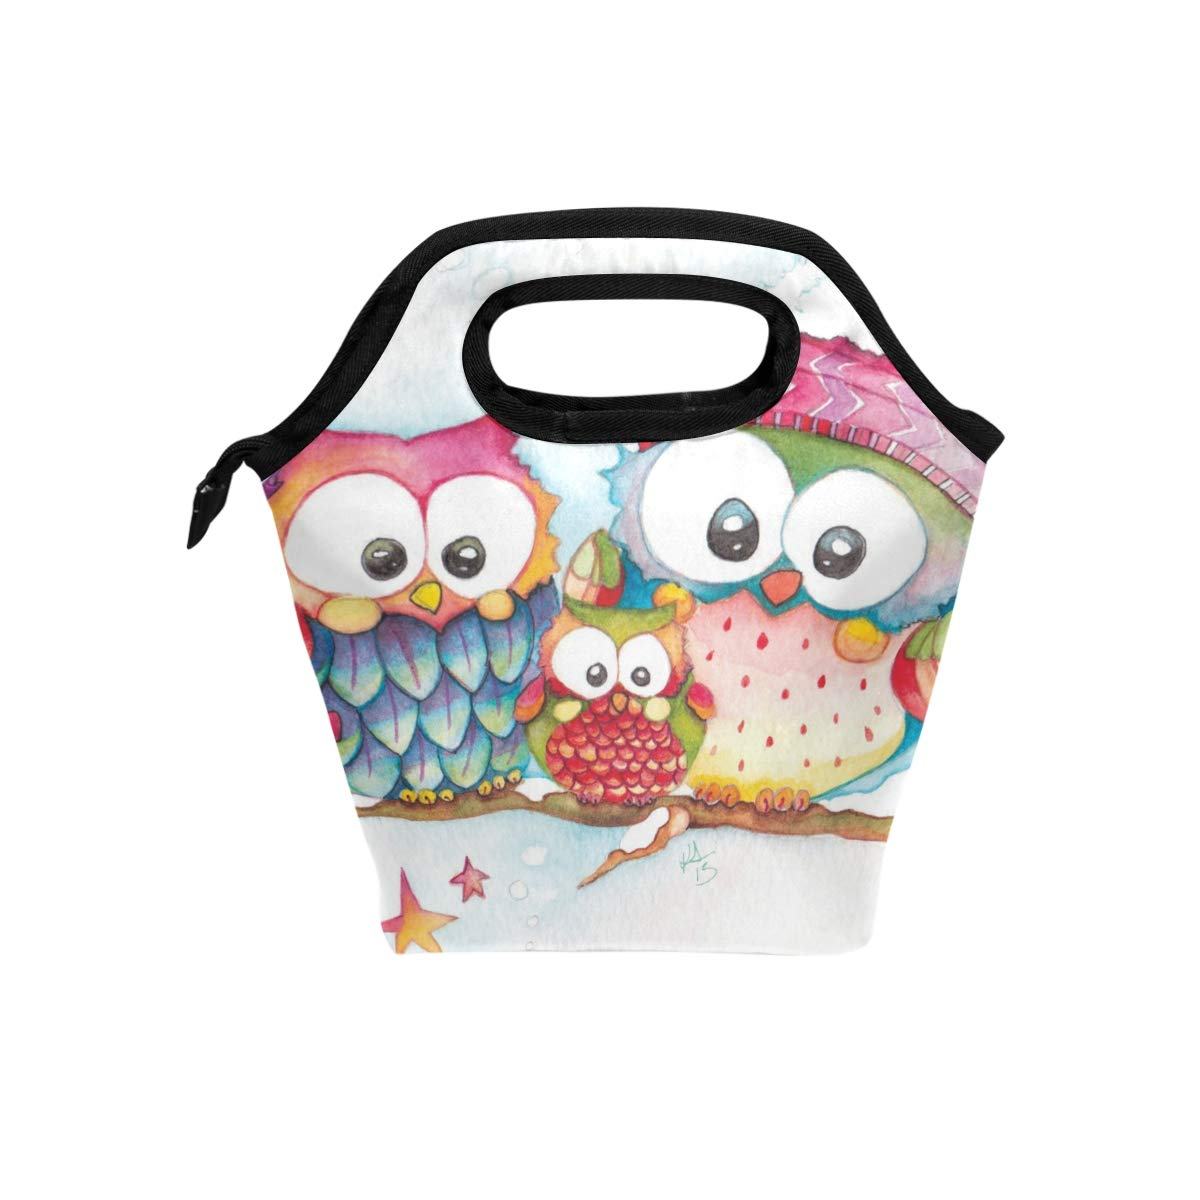 Lunch Bag Cartoon Owls Family Tree Womens Insulated Lunch Tote Zipper Kids Lunch Box